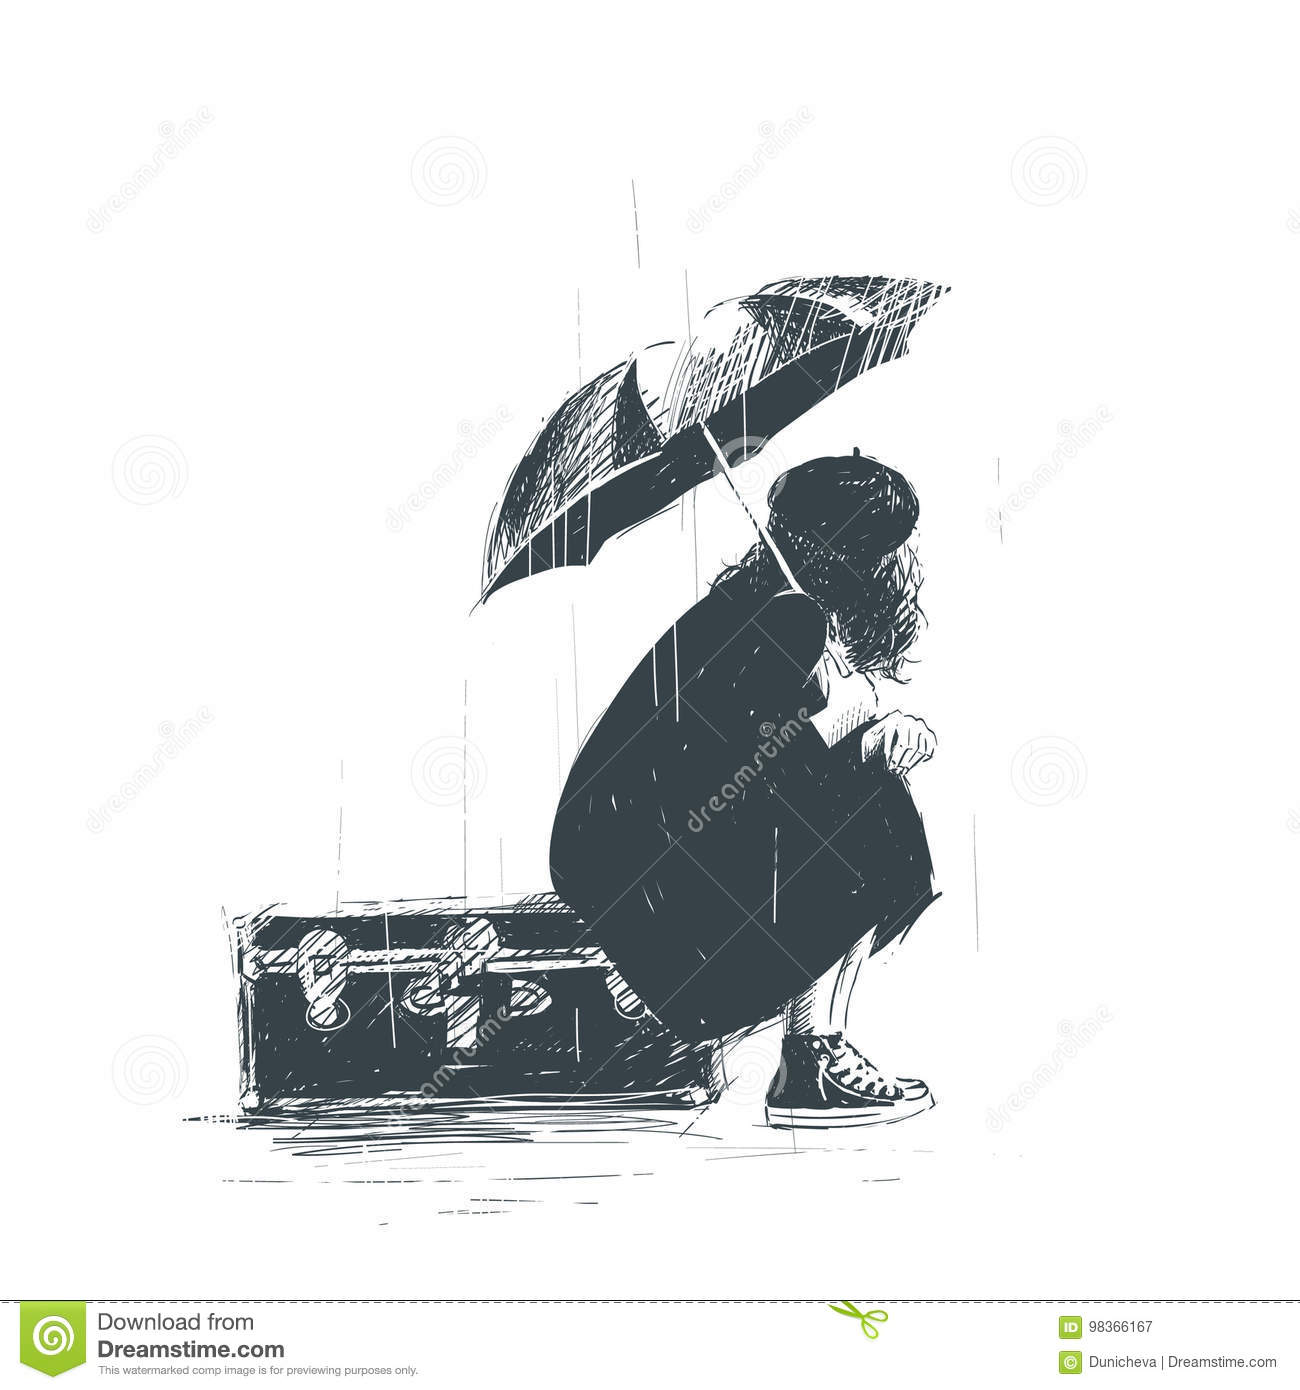 Lonely girl is sitting on the luggage with an umbrella in her hands during the rain